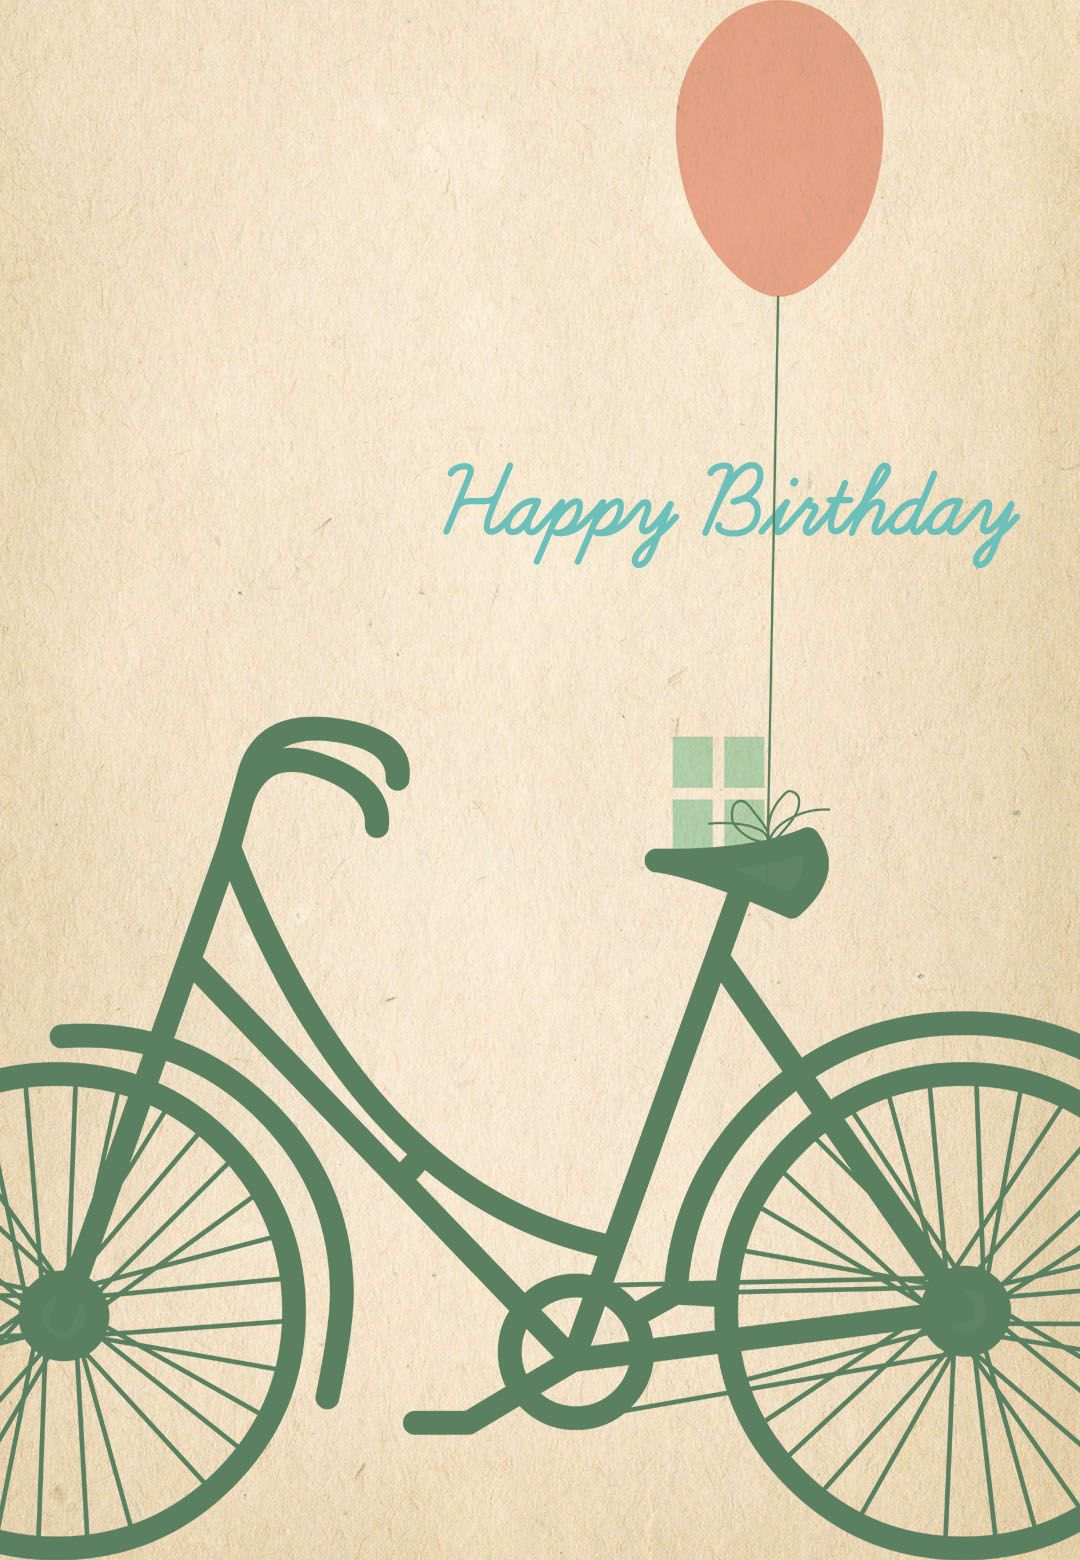 Pin by Andrea Bruchez on DIY Happy birthday cards, Free